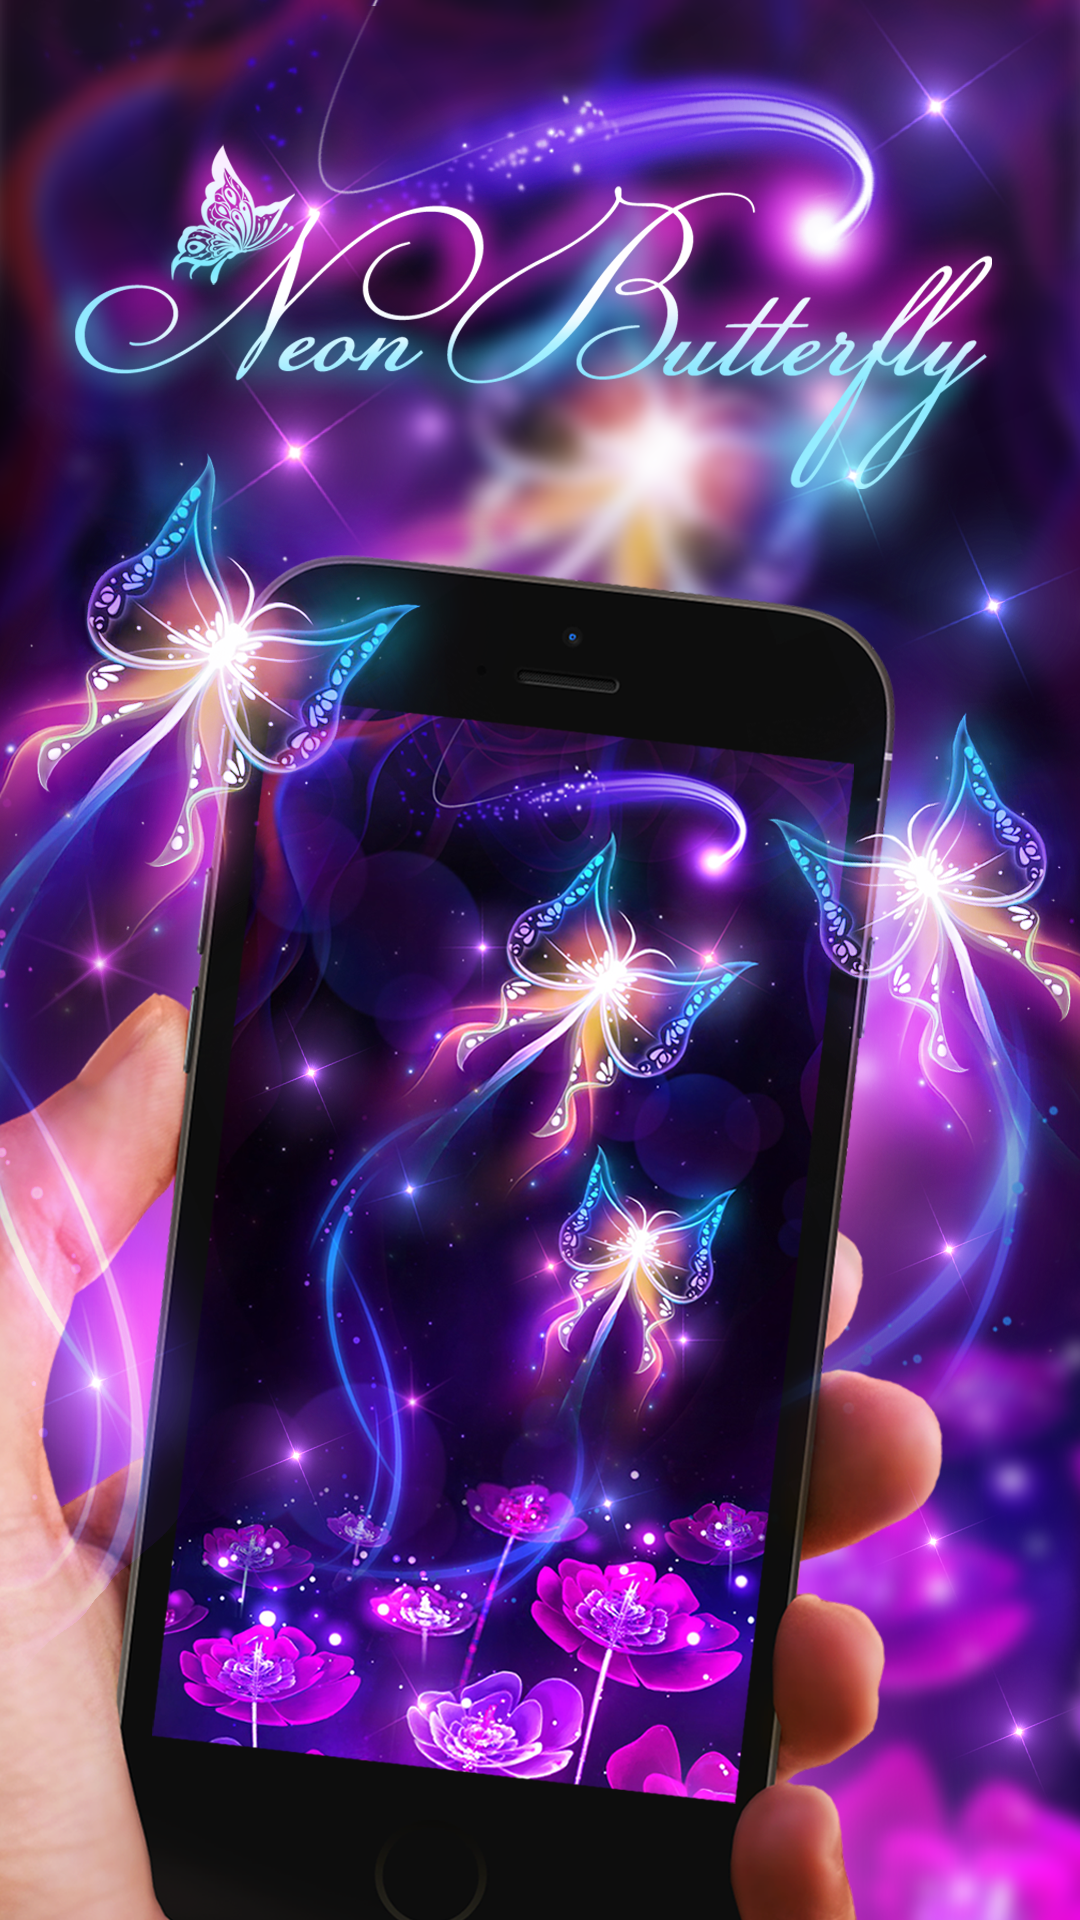 Neon butterfly live wallpaper! Android live wallpapers